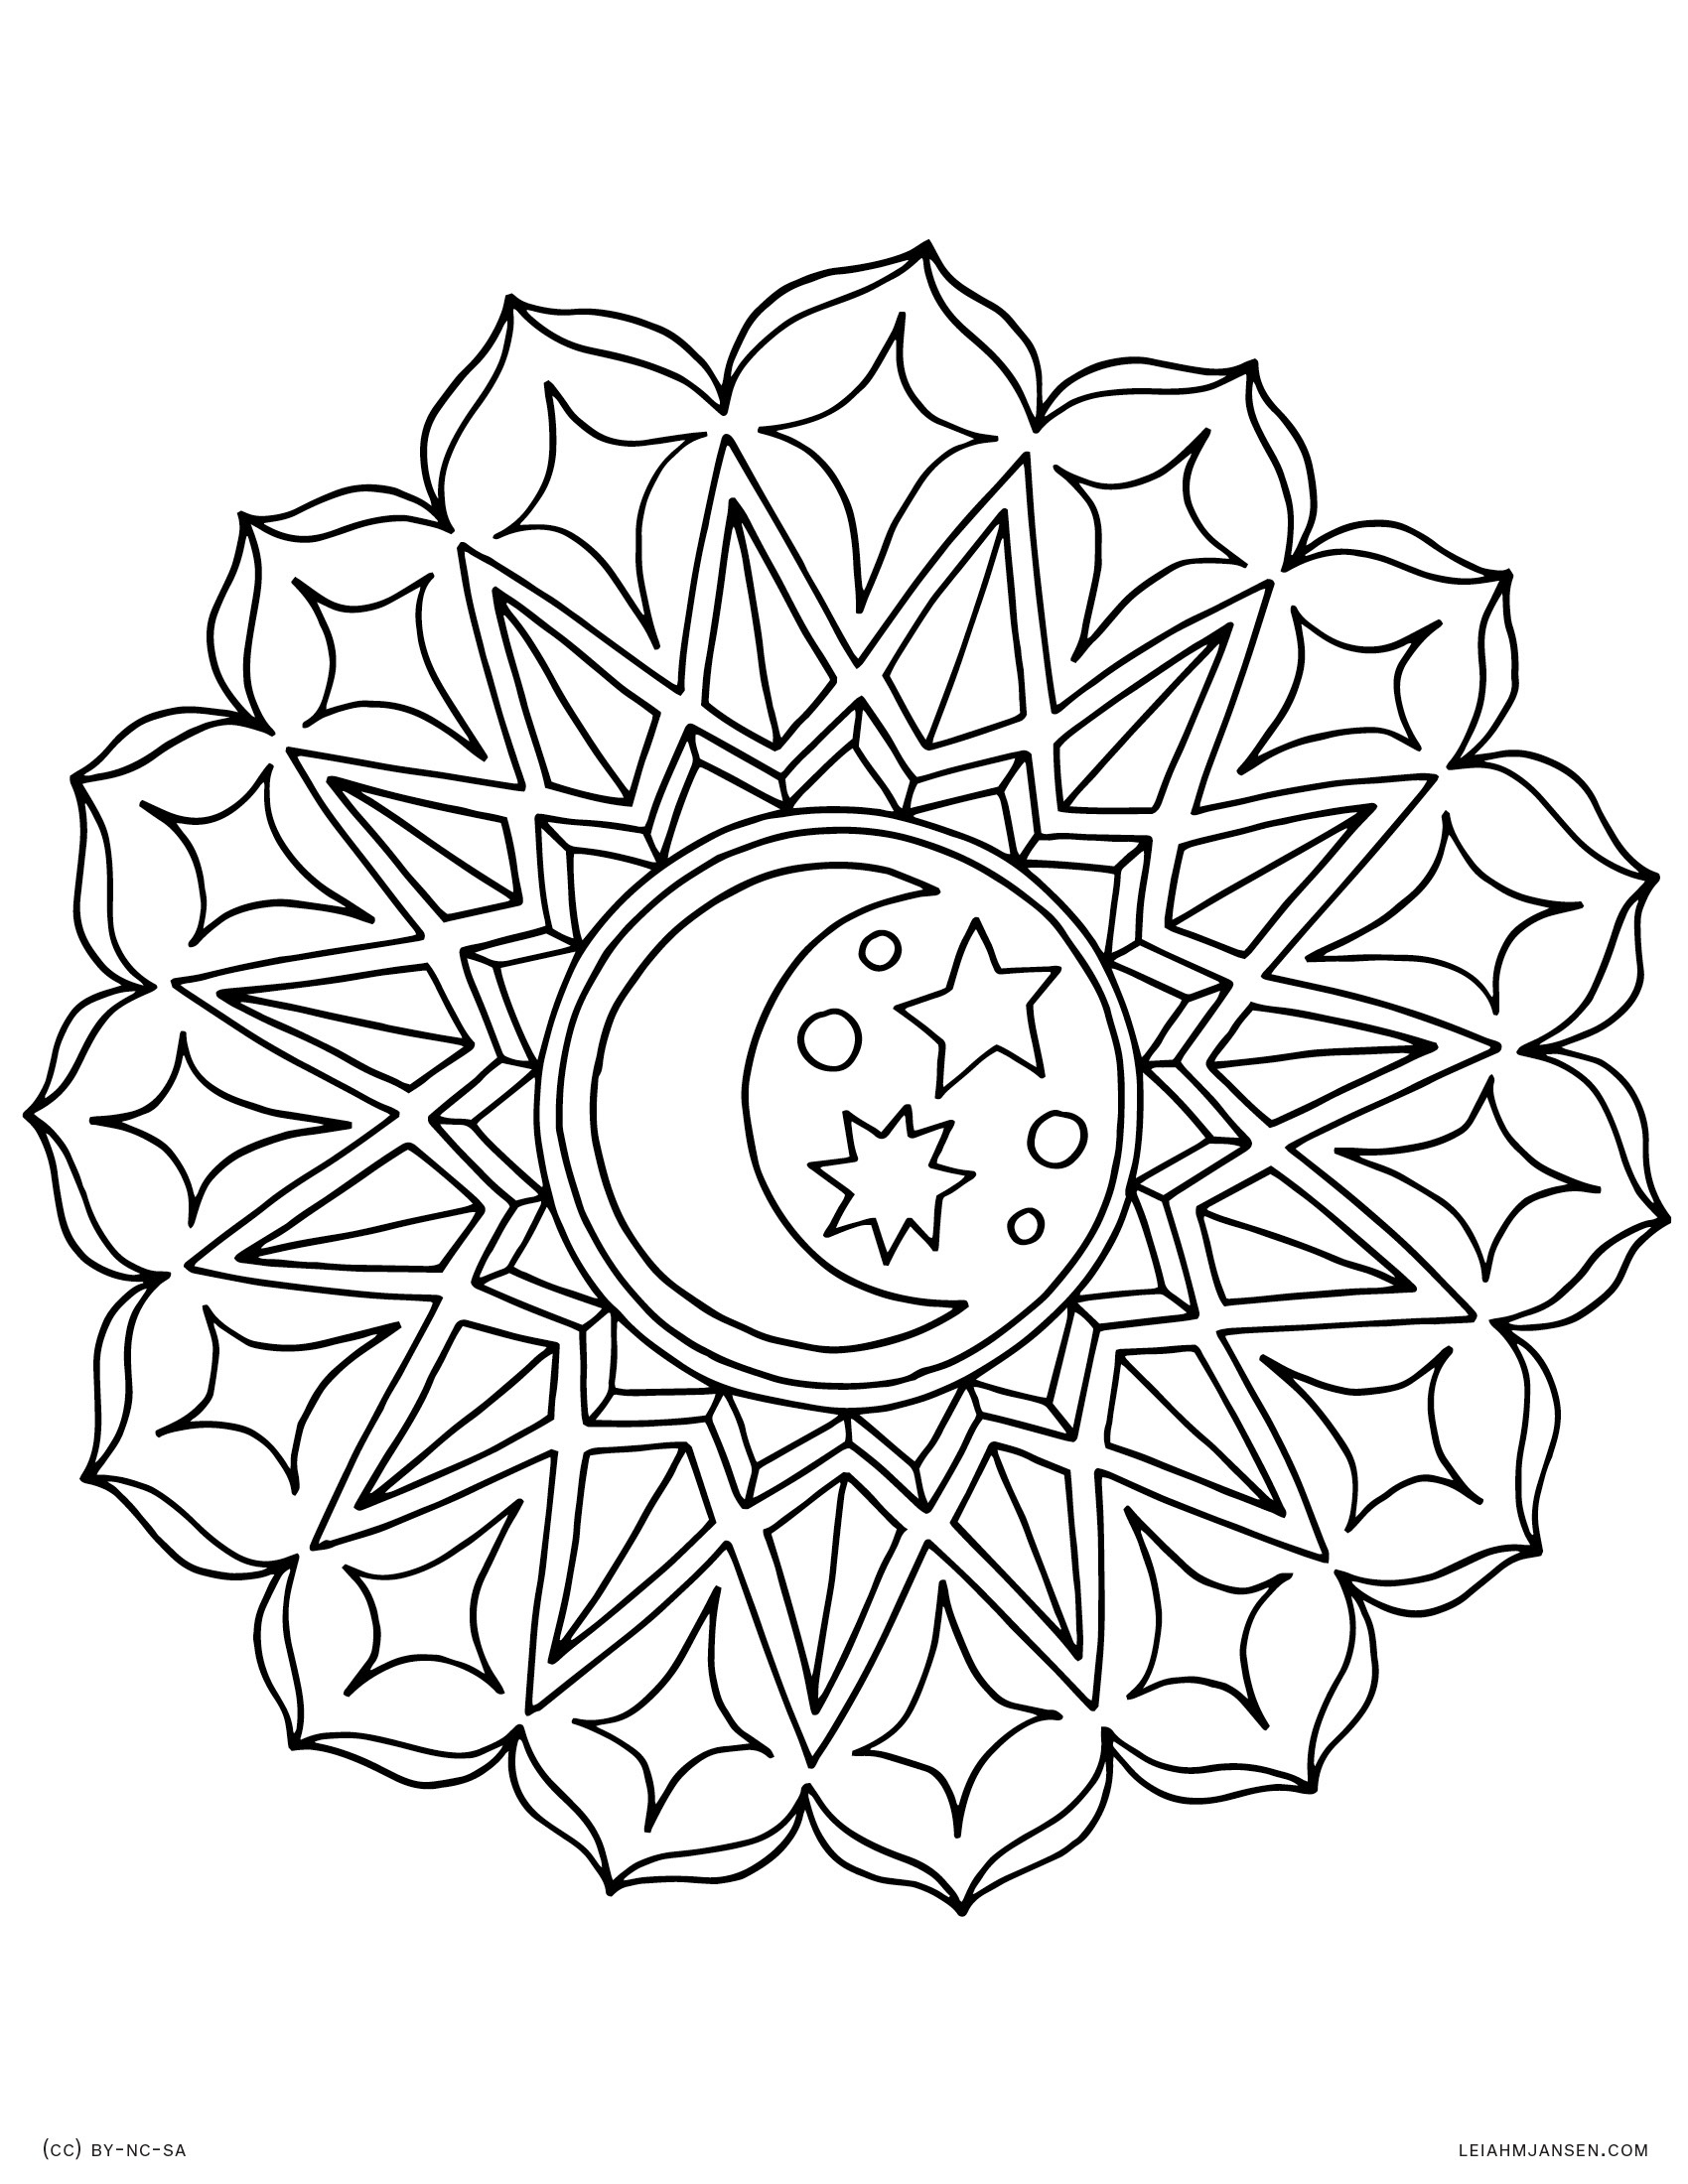 Coloring Pages - Free Printable Mandala Coloring Pages For Adults